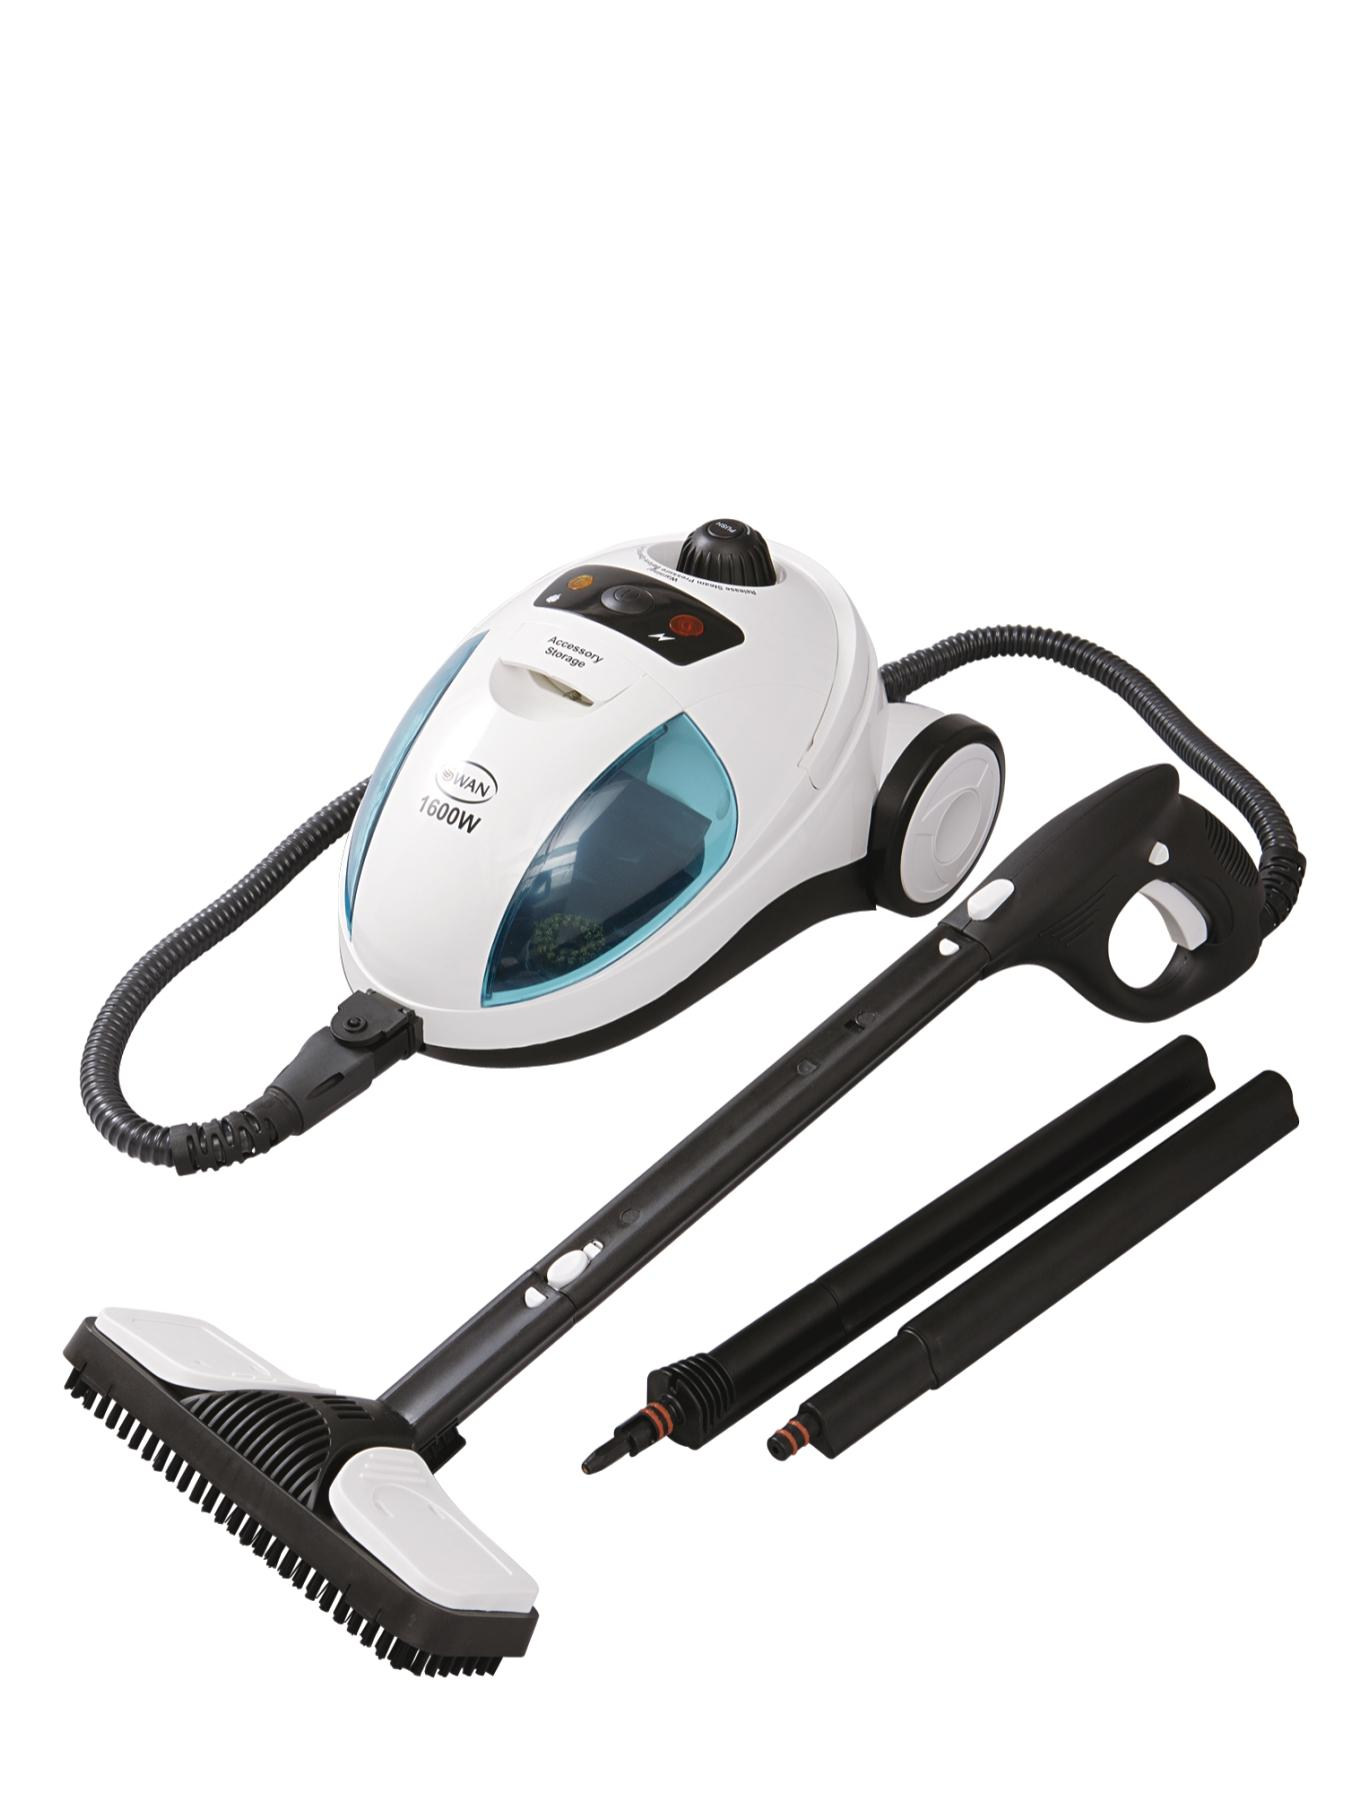 SS2020 1500 Watt Steam Cleaner